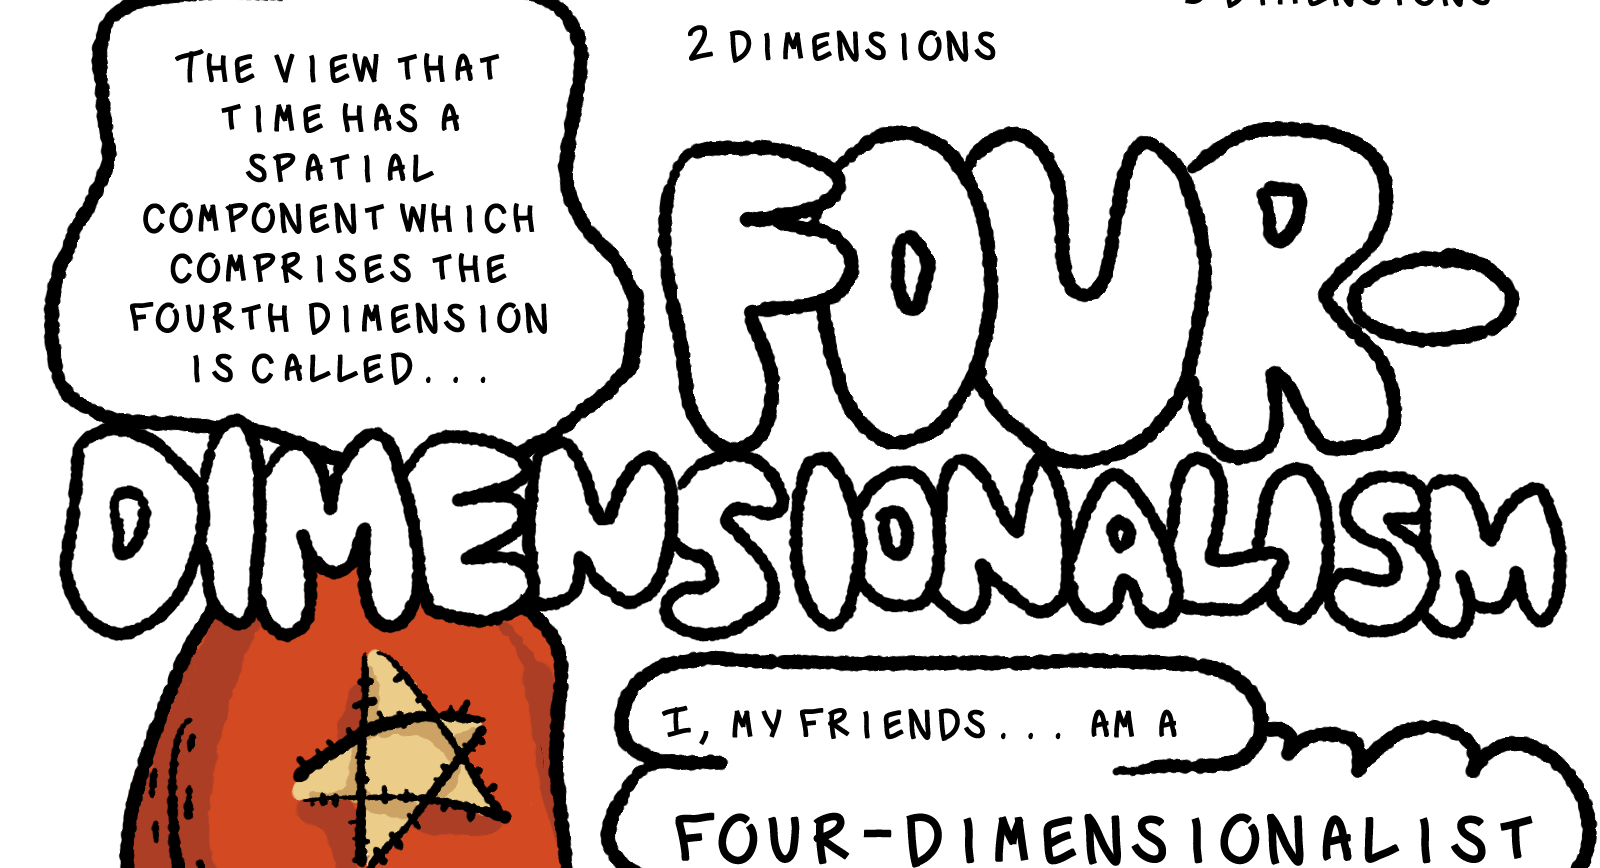 The next text box reads,The veiw that time has a spatial component which comprises the fourth dimesnion is called... FOUR-DIMENSIONALISM, which is emblazoned in big squishy block letters.